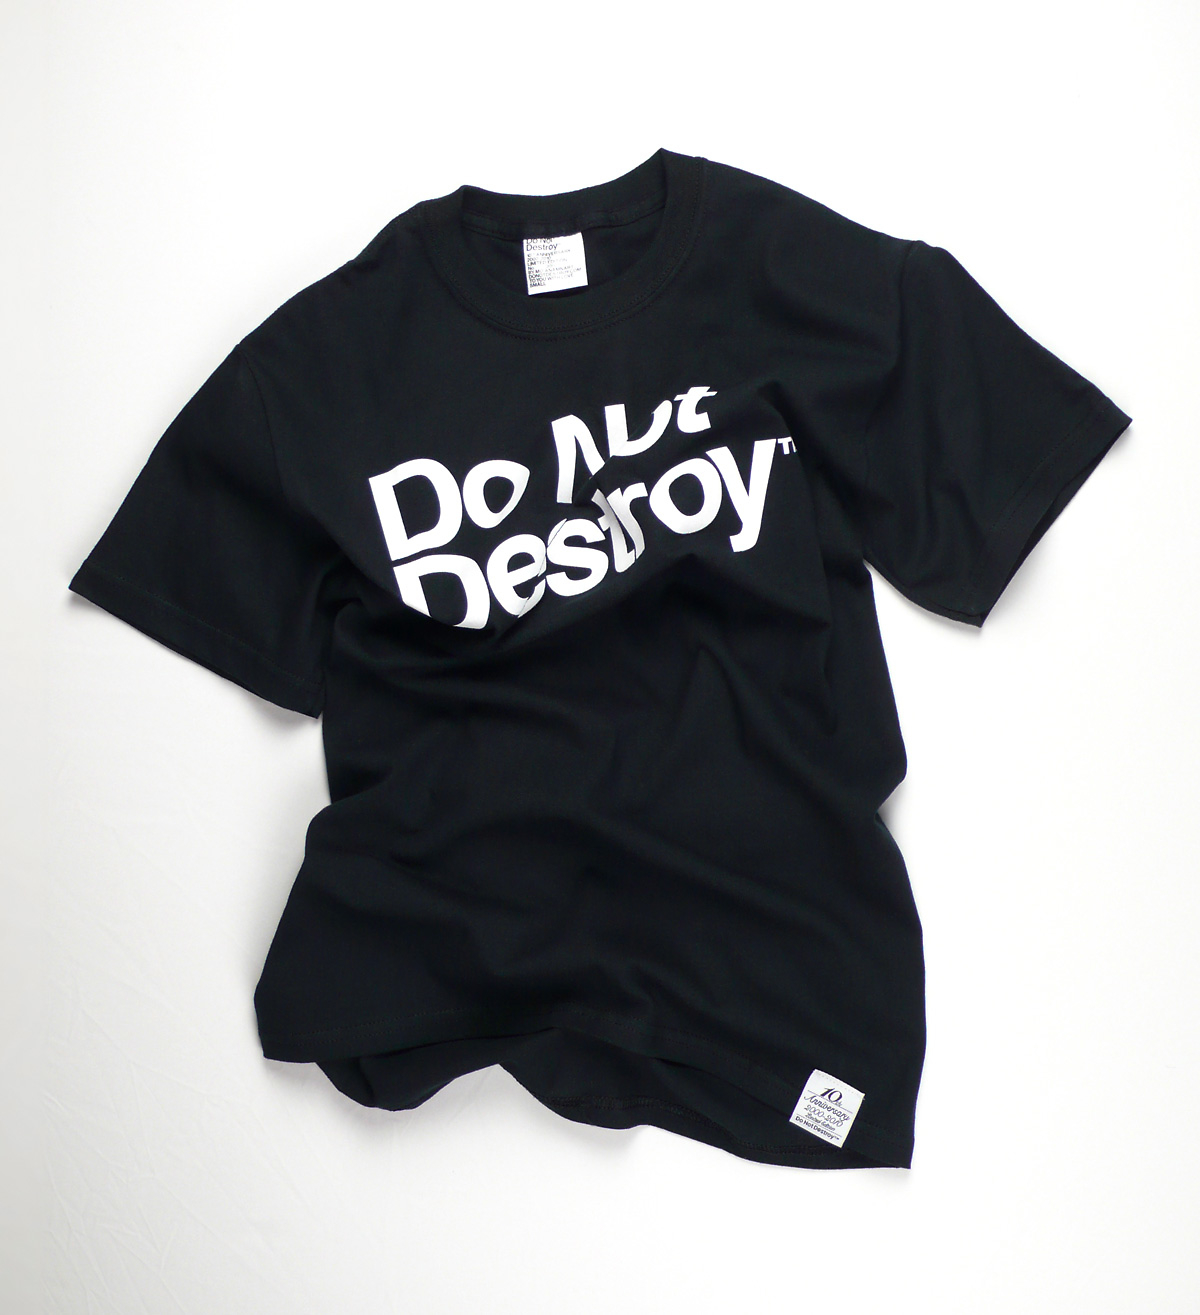 Do Not Destroy Black t-shirt tee